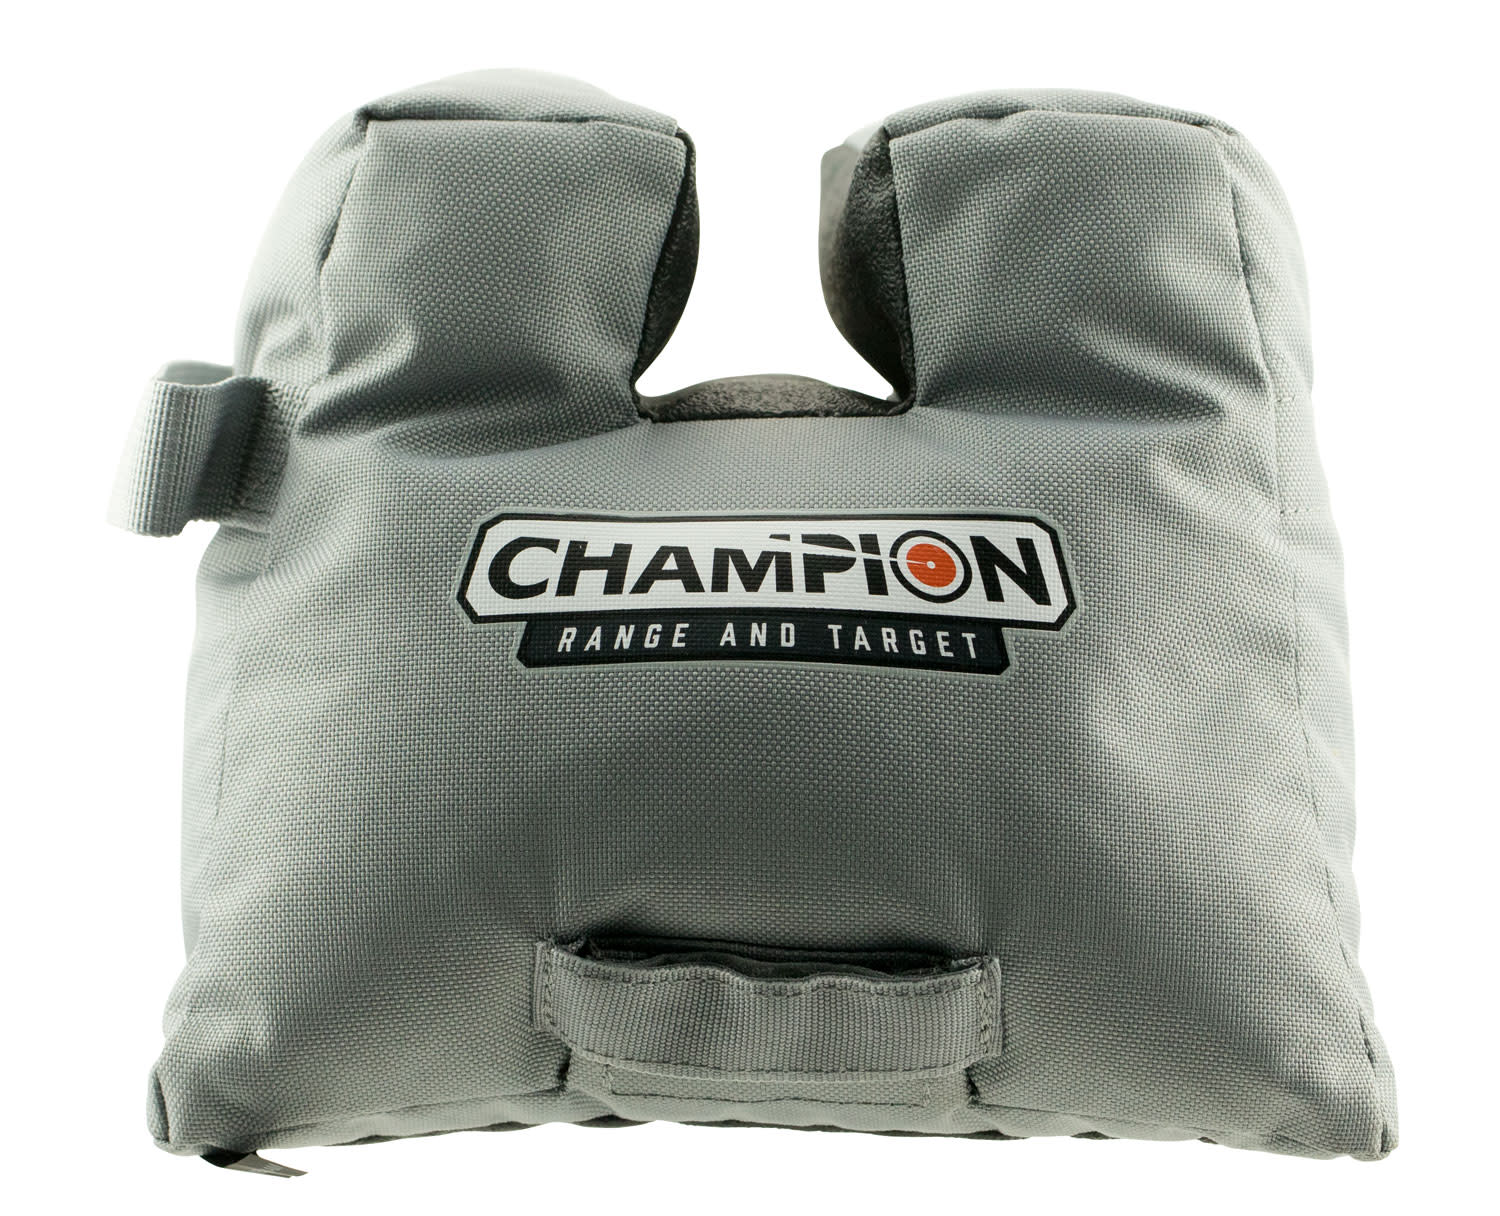 Champion V Bag Shooting Bag Front Bag - Filled